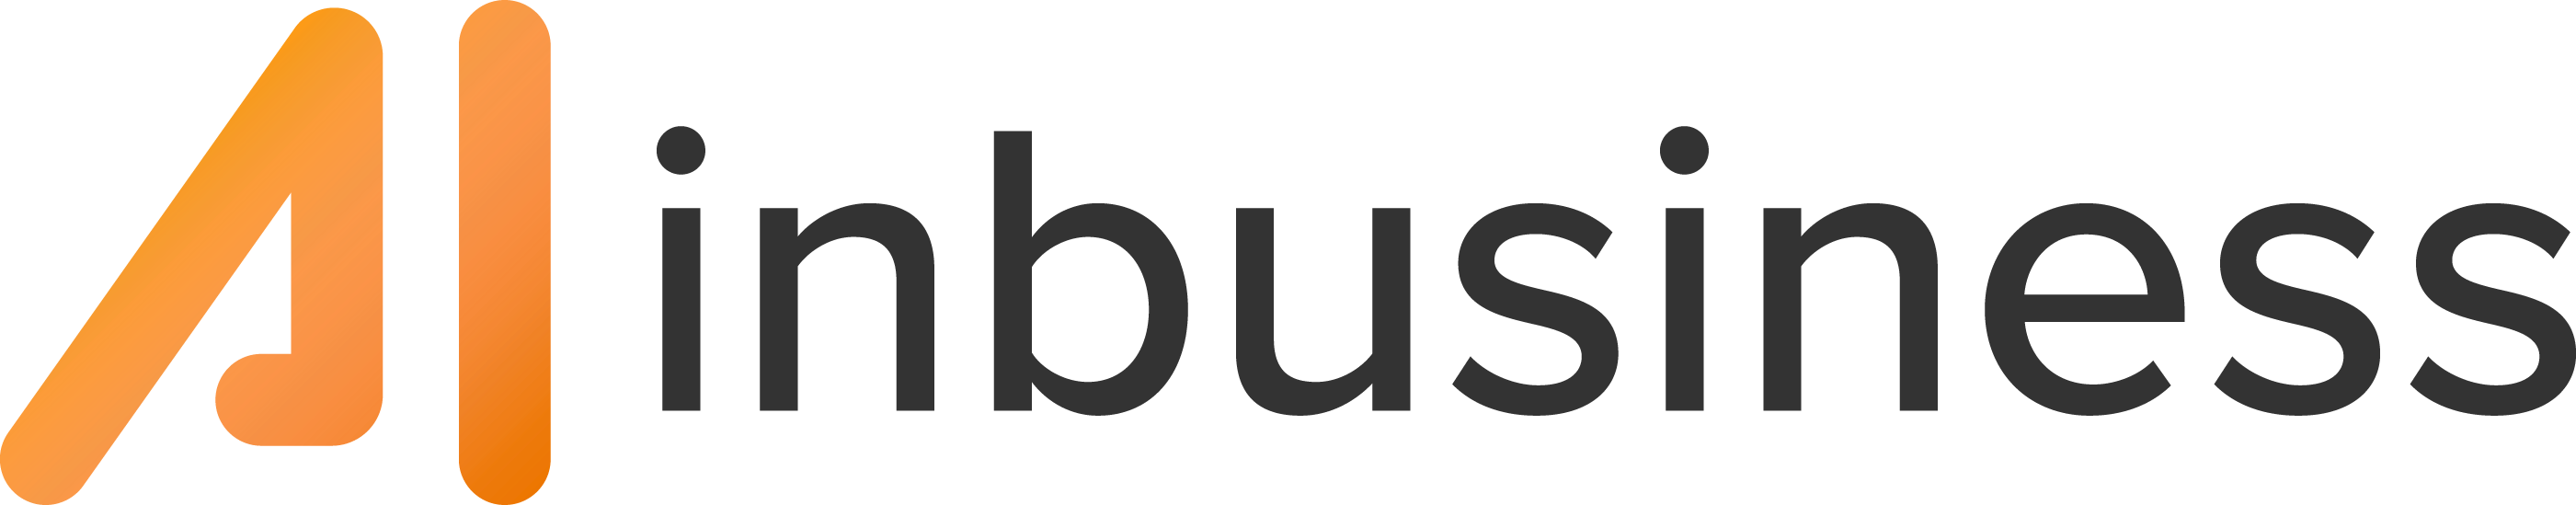 AI In Business logo